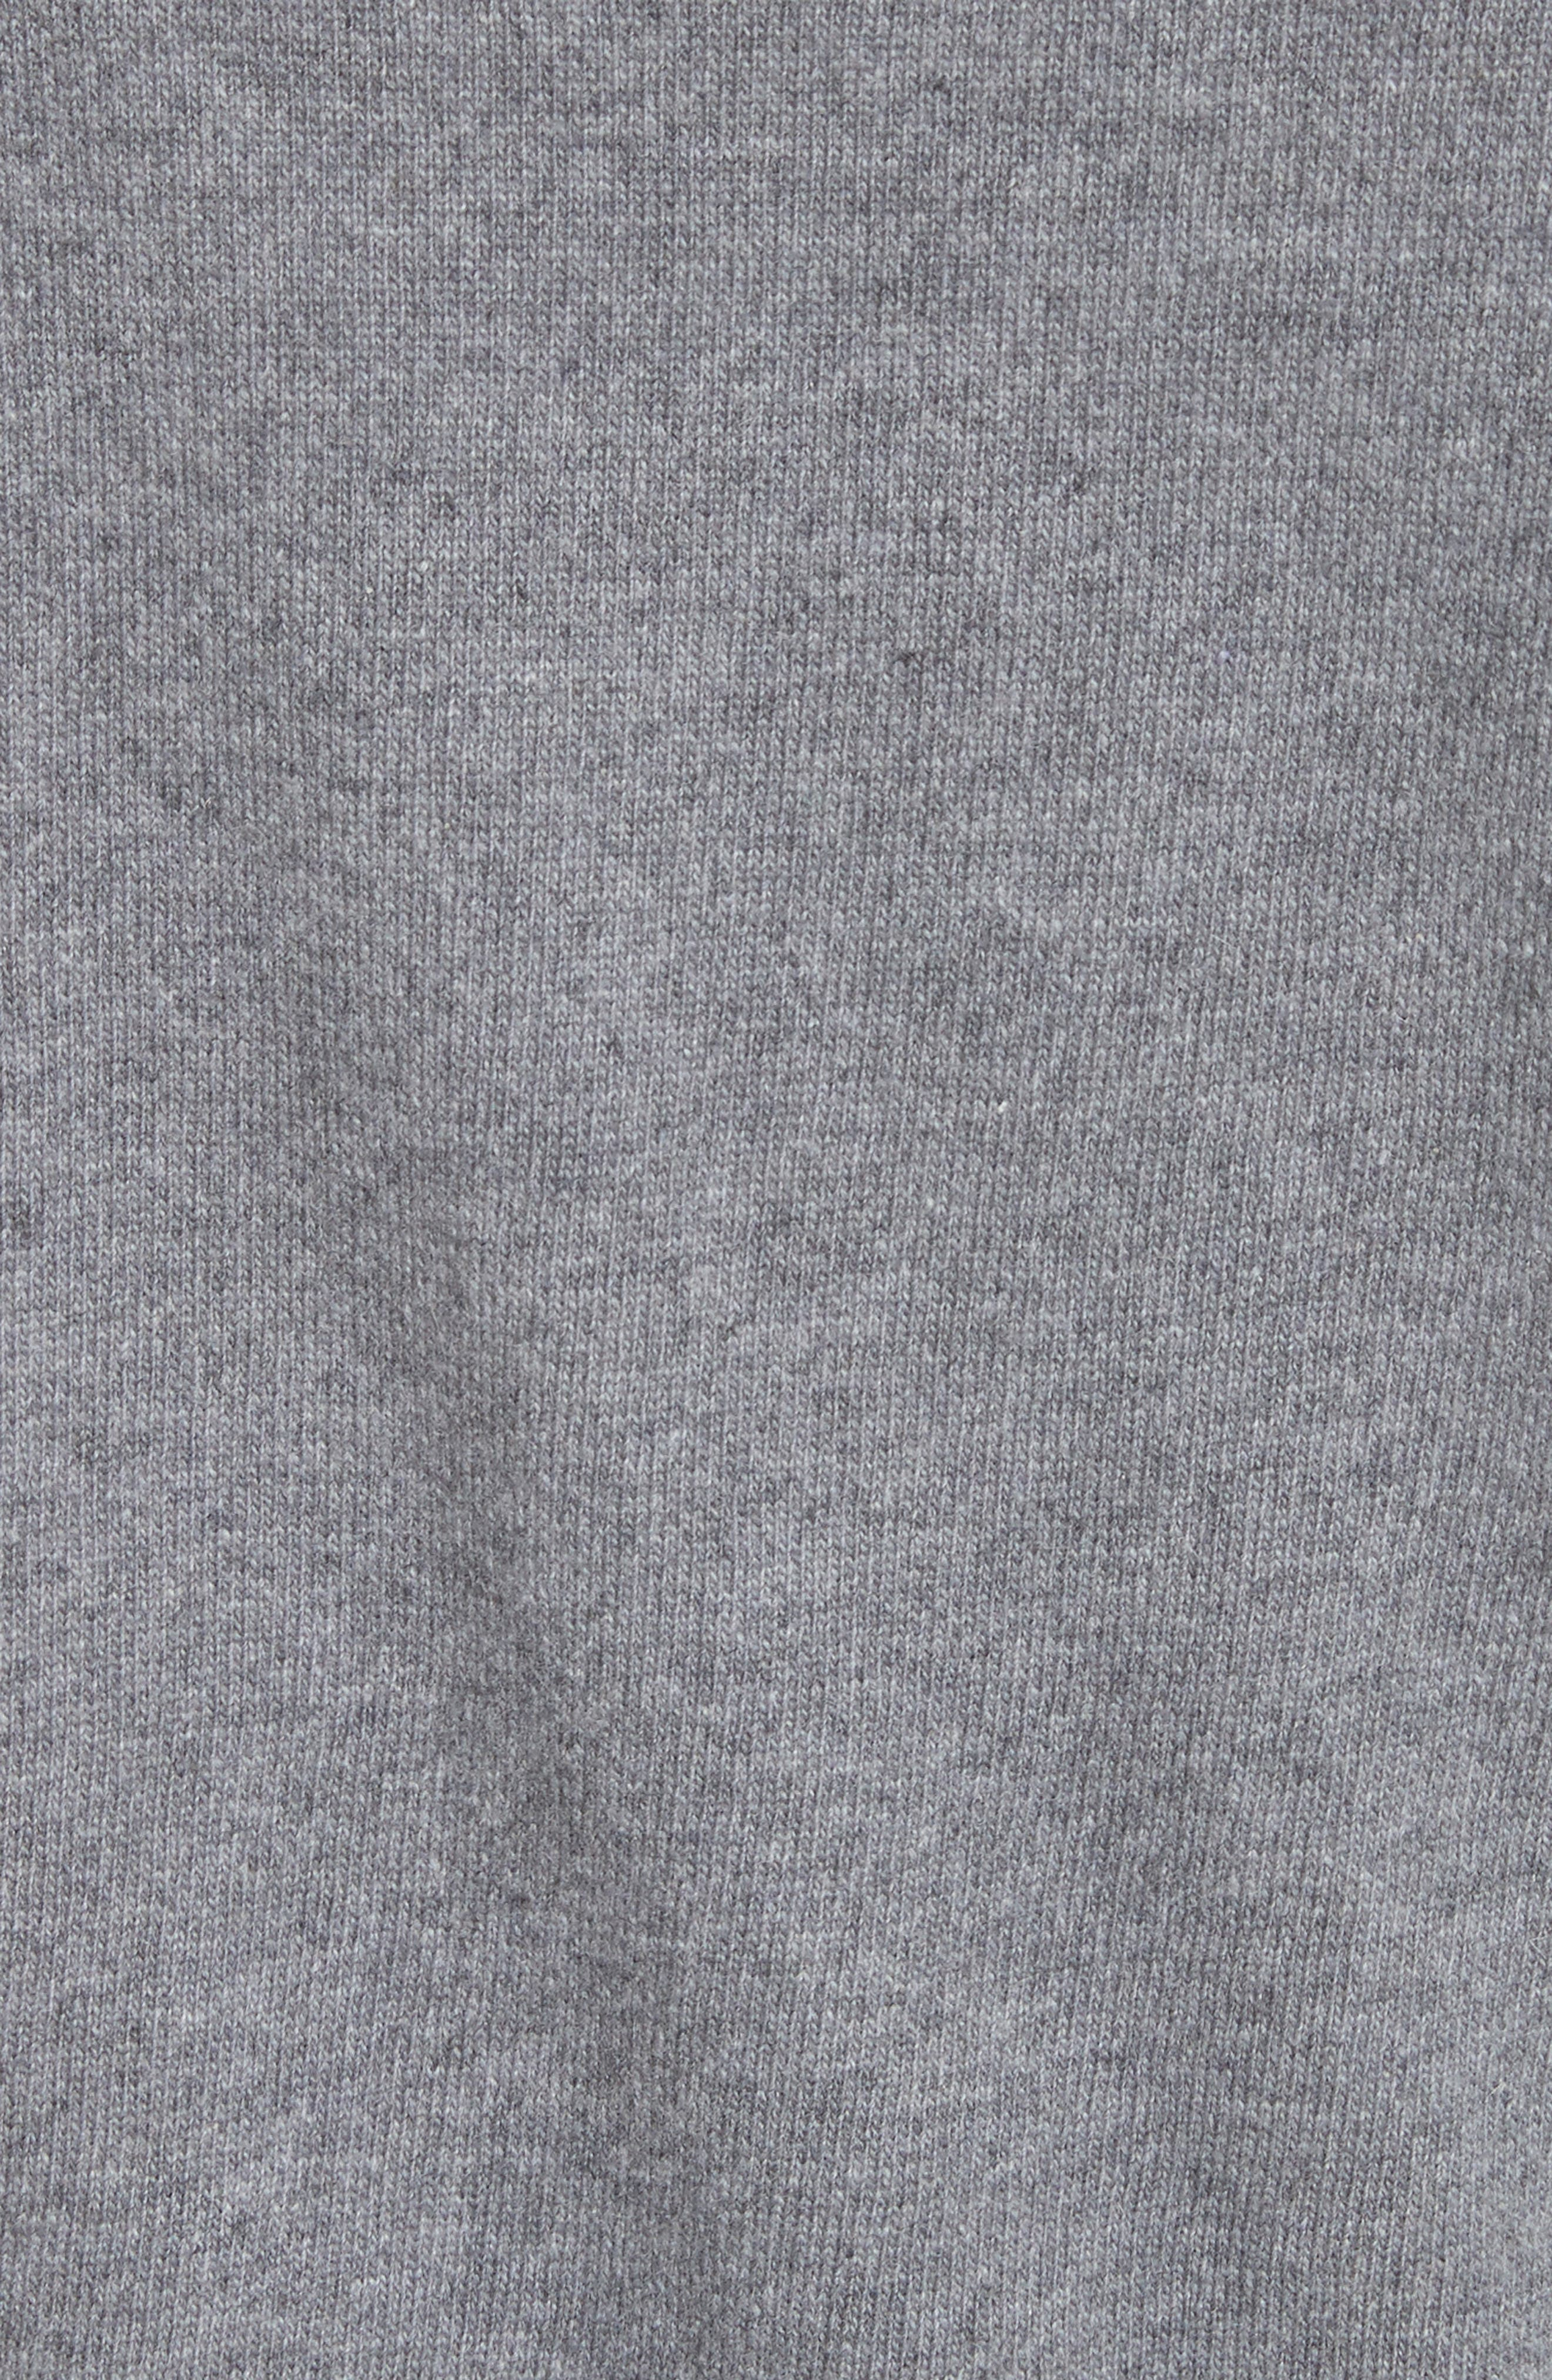 Wool & Cashmere Logo Sweater,                             Alternate thumbnail 5, color,                             030